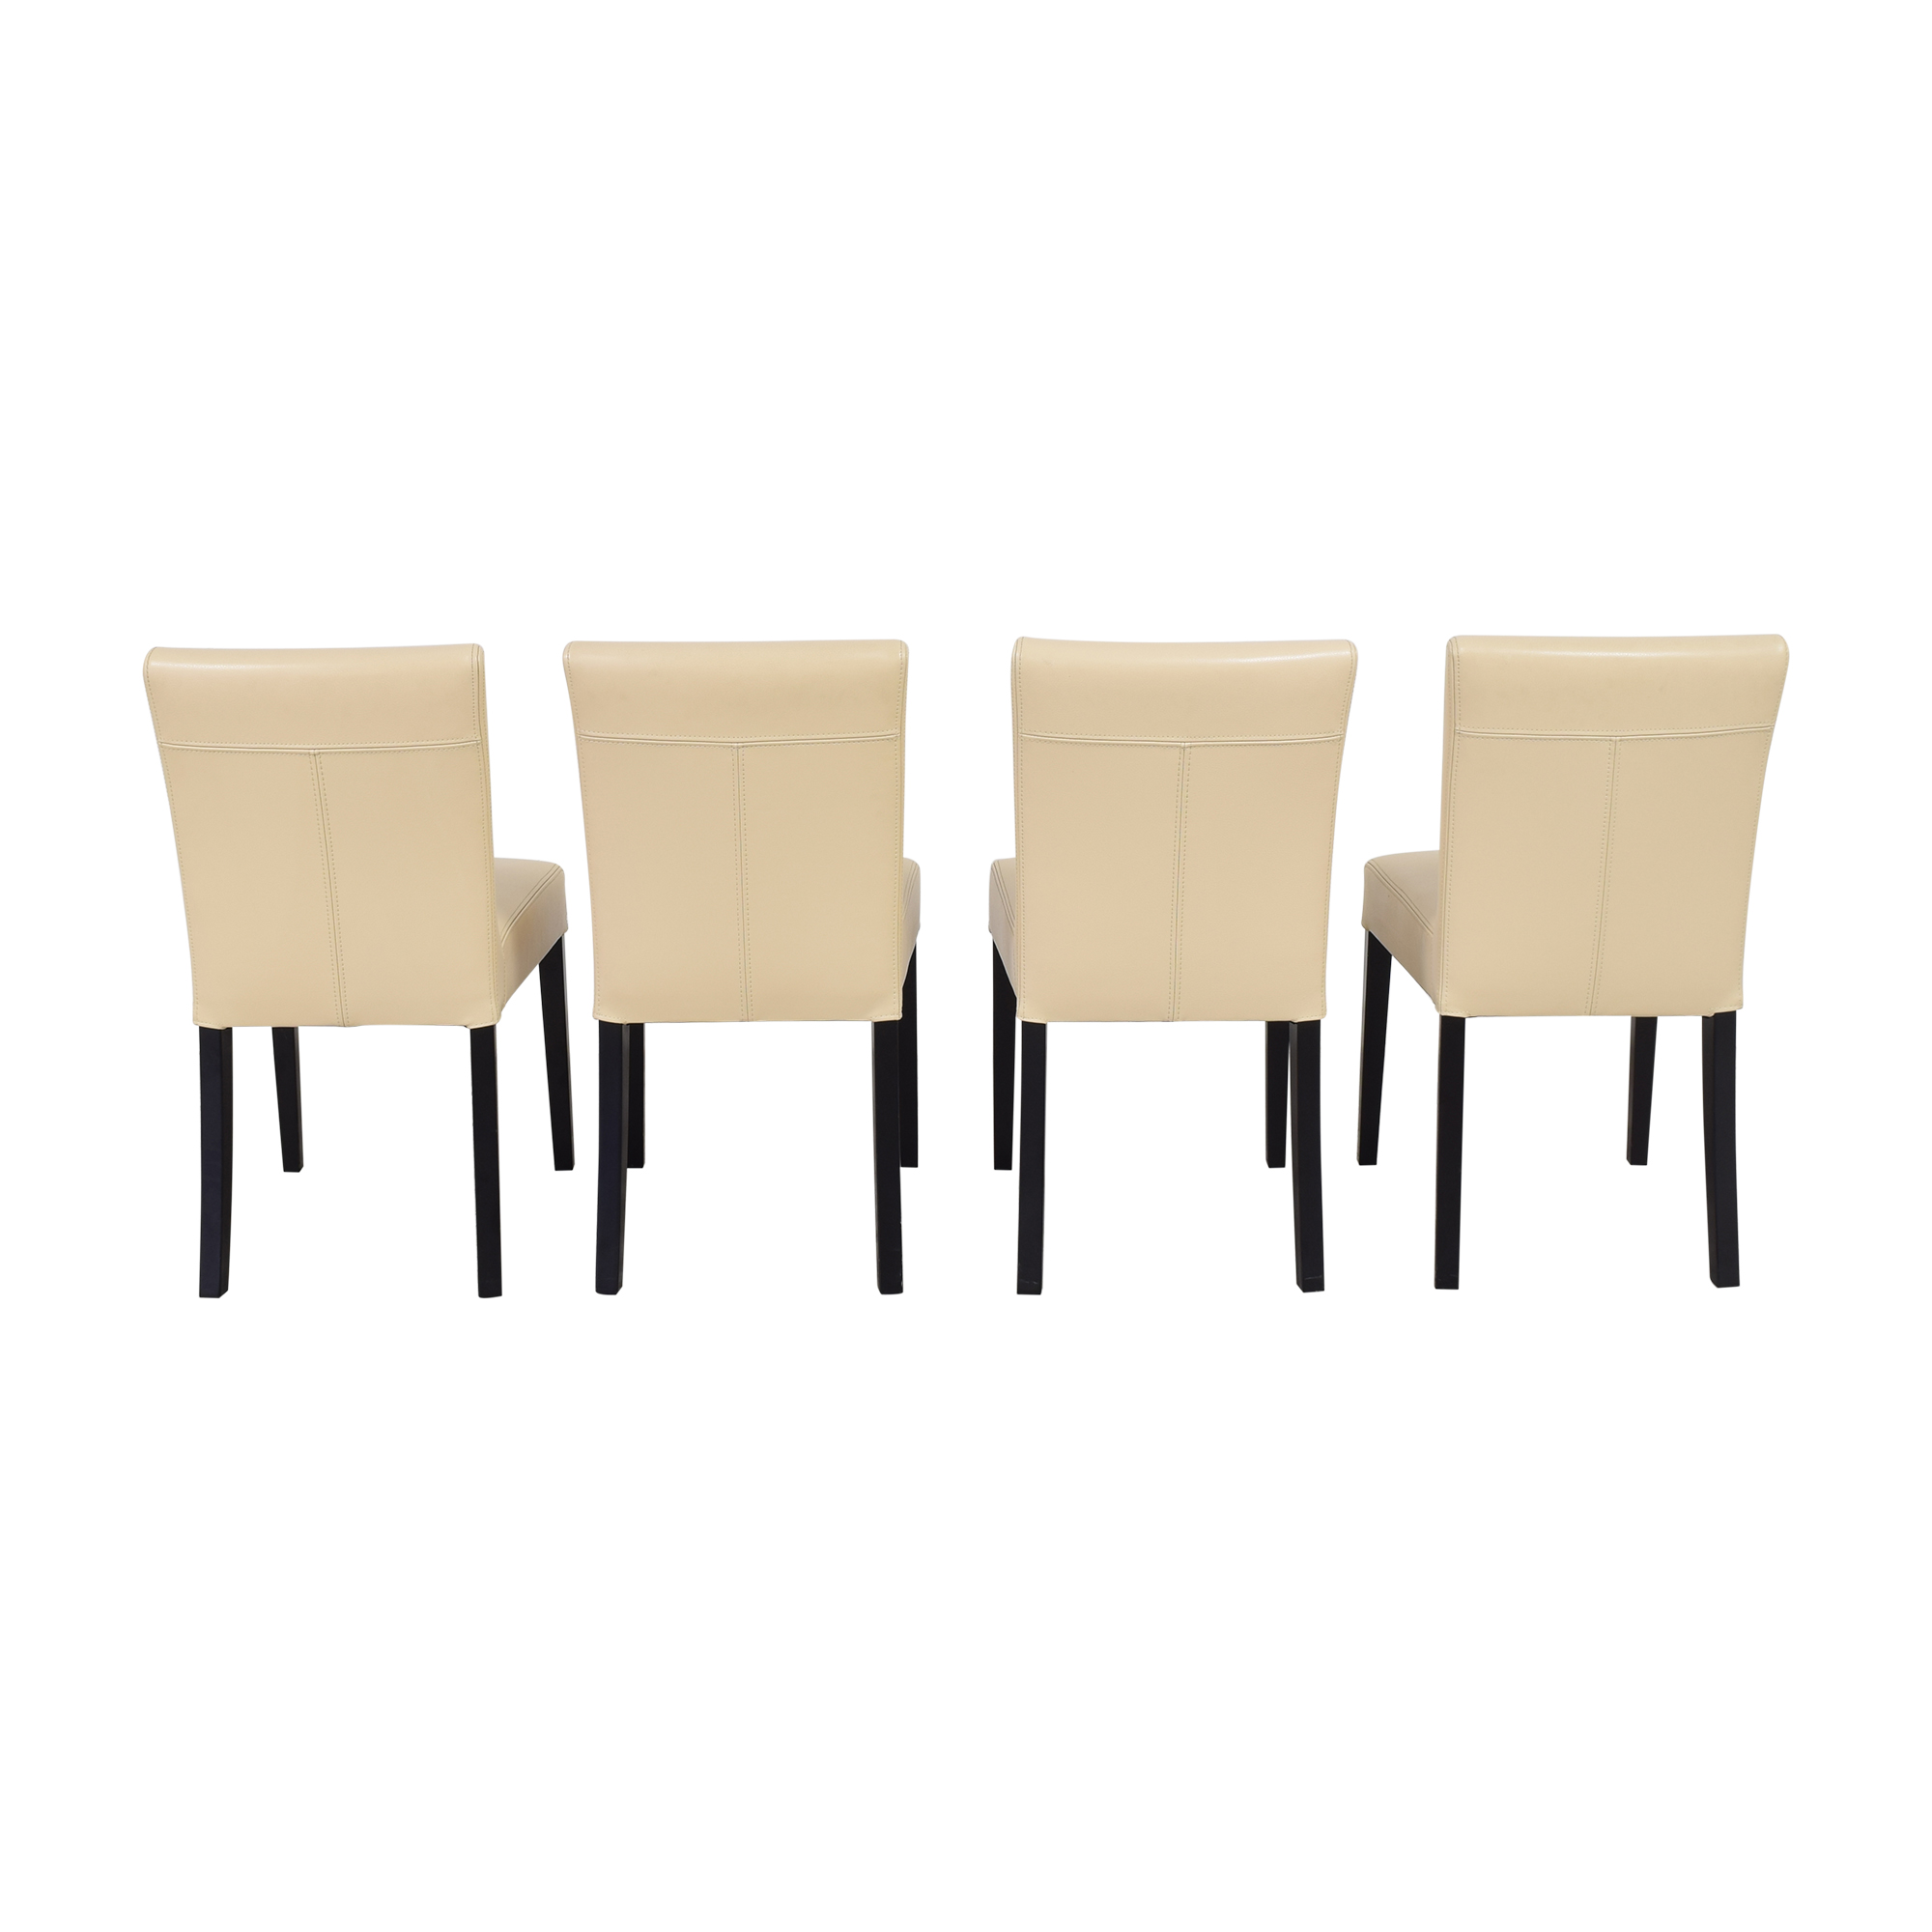 Crate & Barrel Crate & Barrel Lowe Dining Side Chairs used